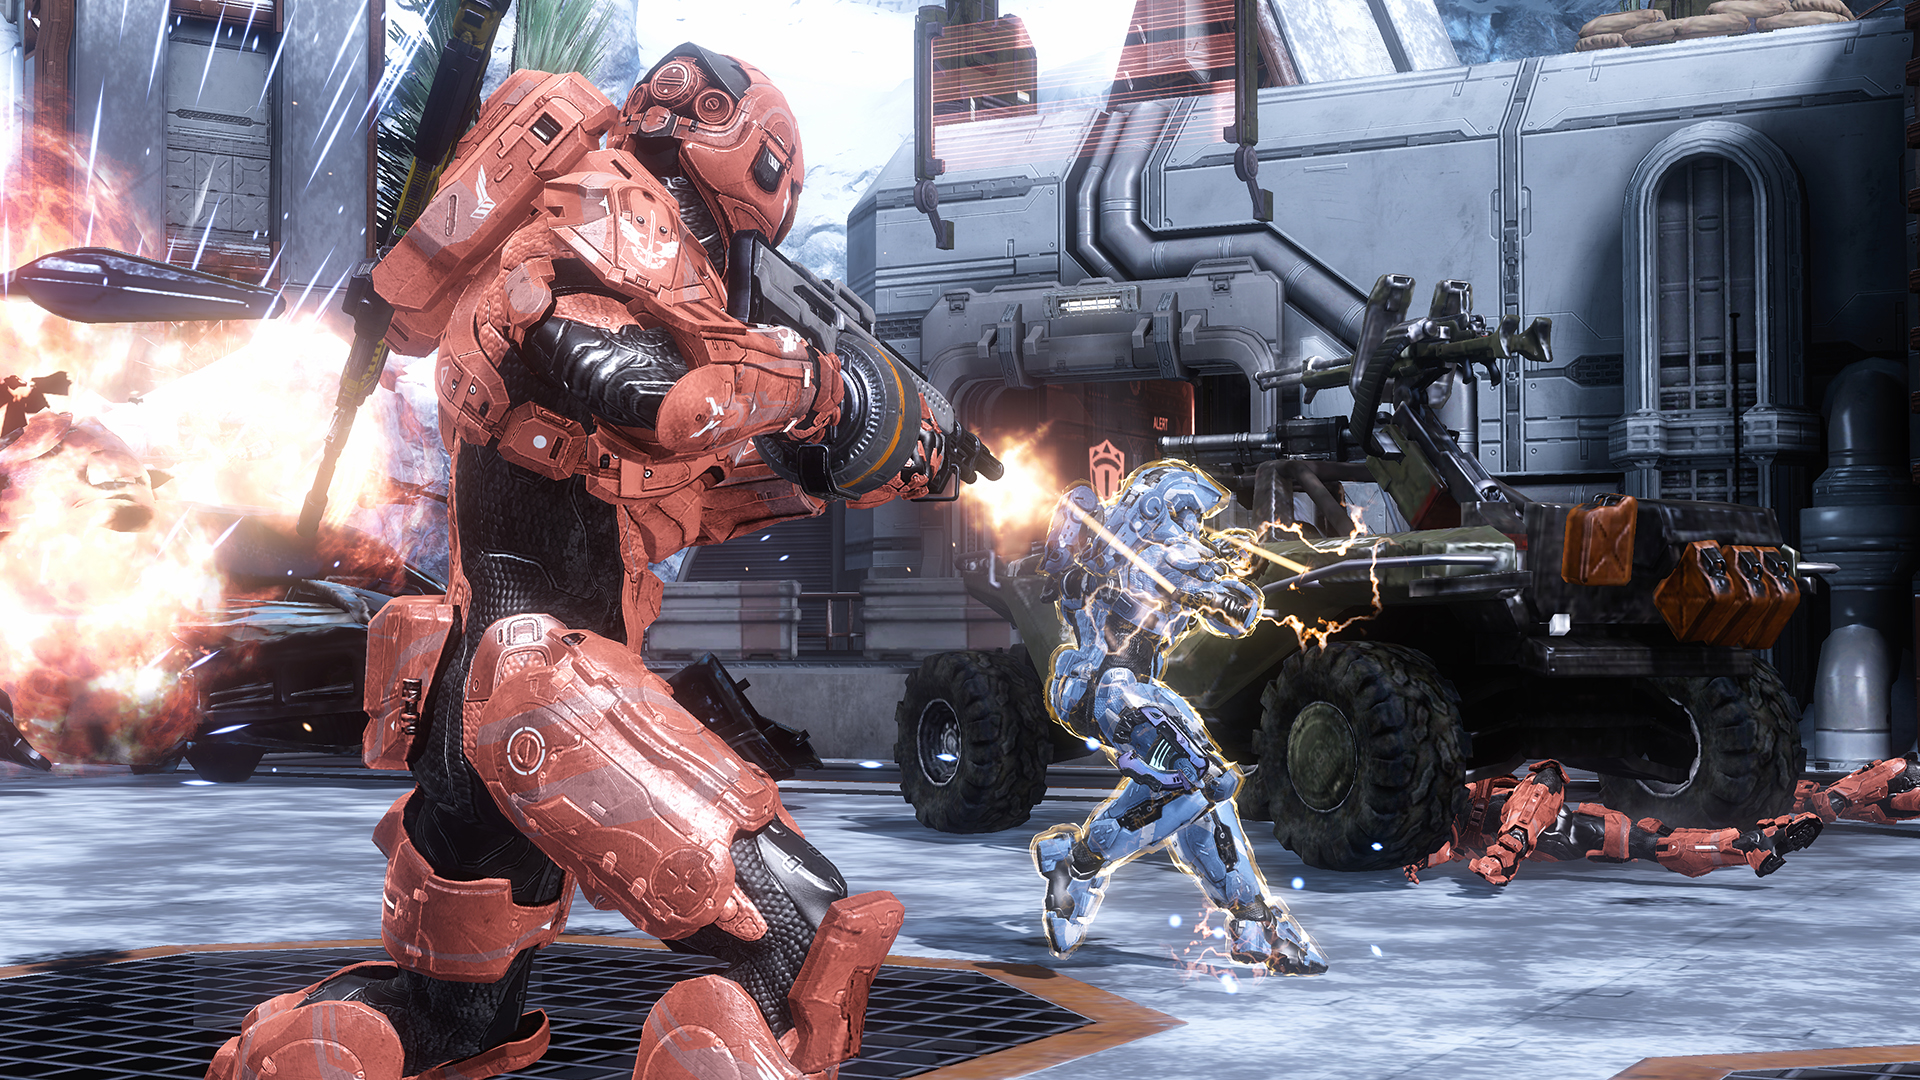 Image result for Halo 4 multiplayer